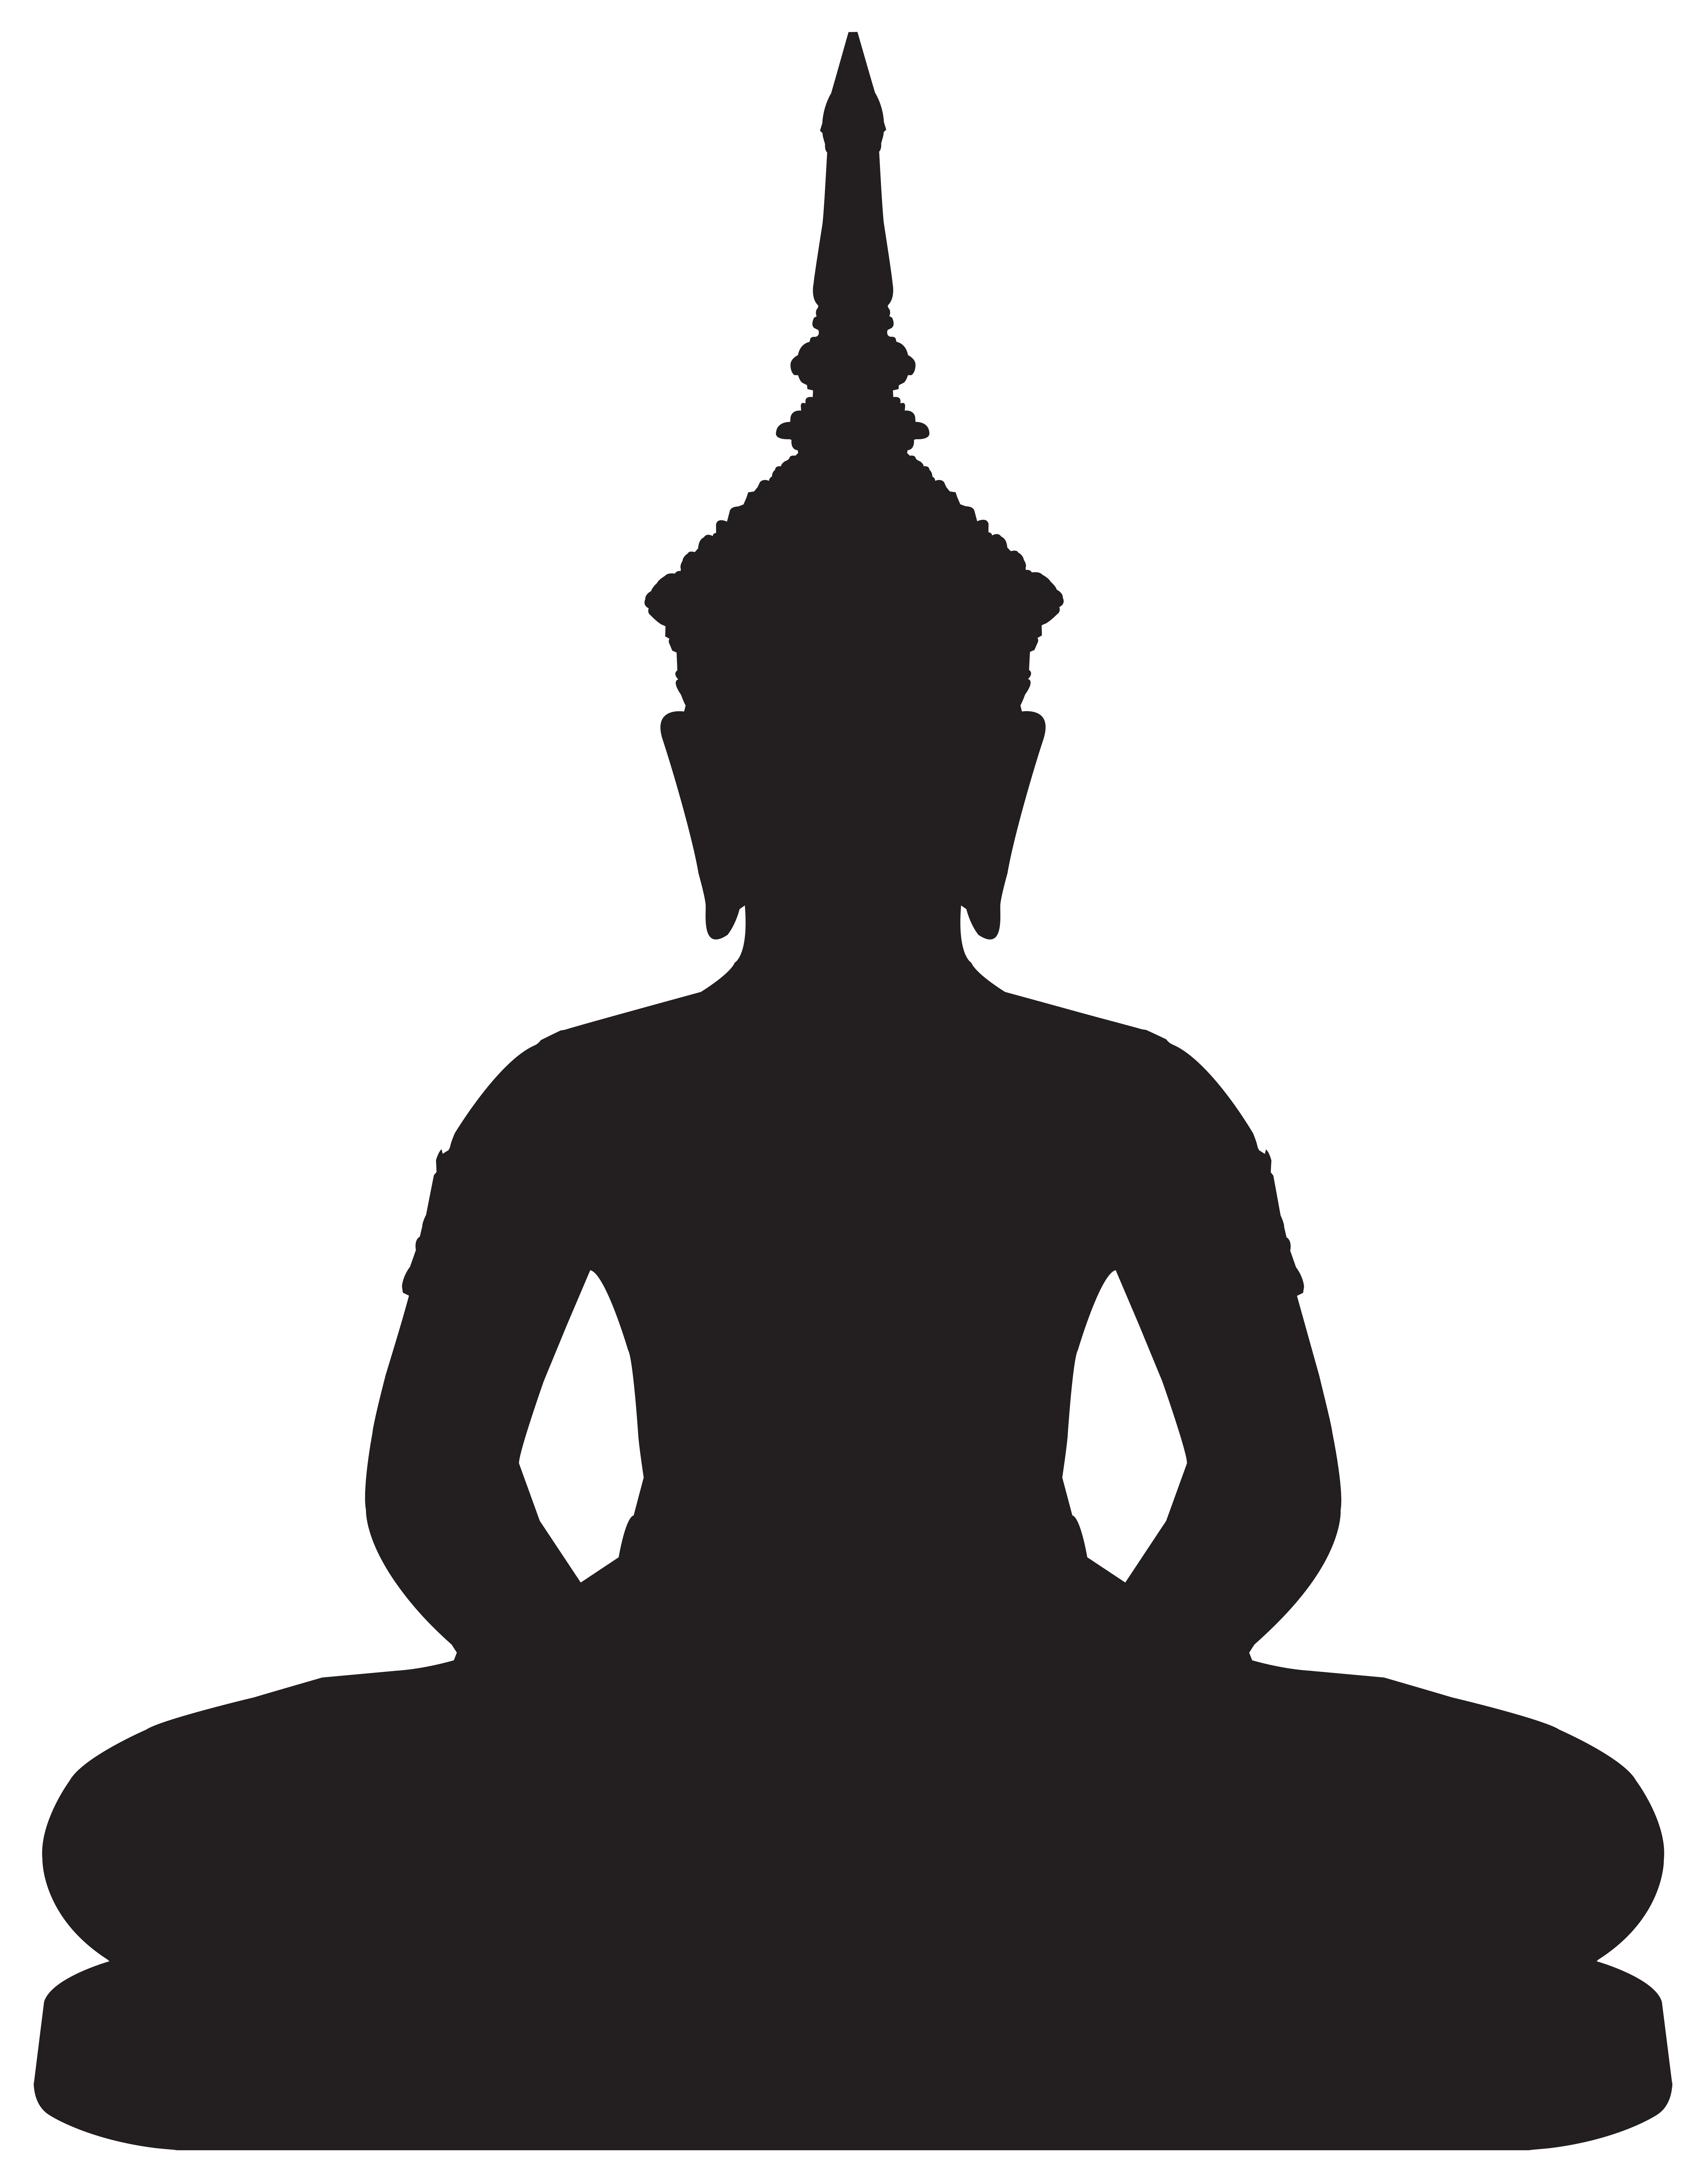 Buddha Statue Silhouette PNG Clip Art.